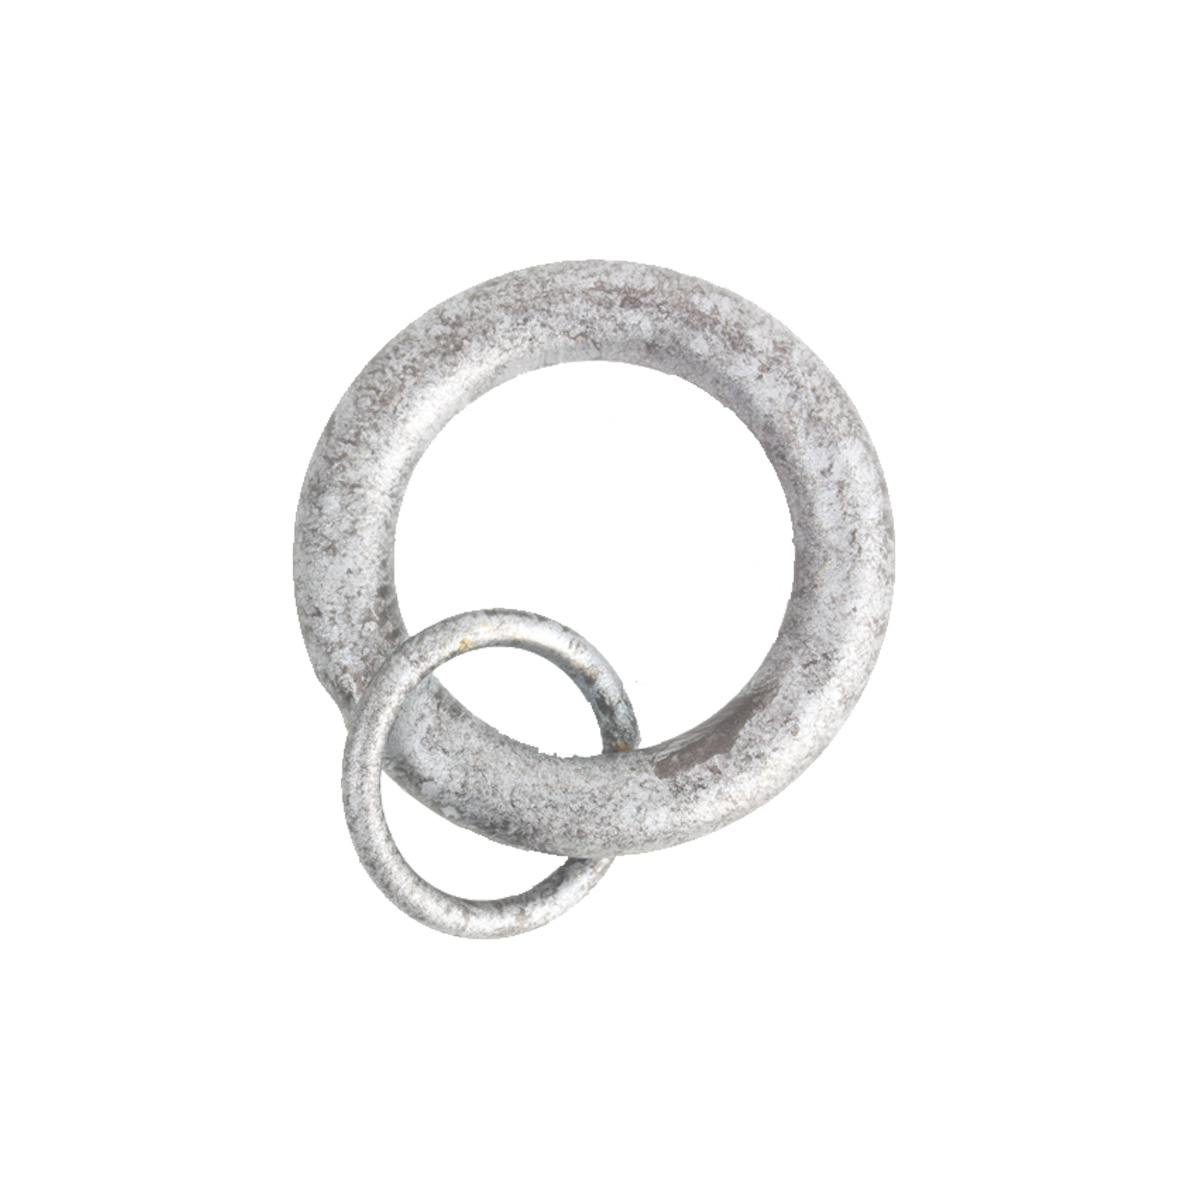 Rings W/ Loop 4 Silver (10 Per Pack)